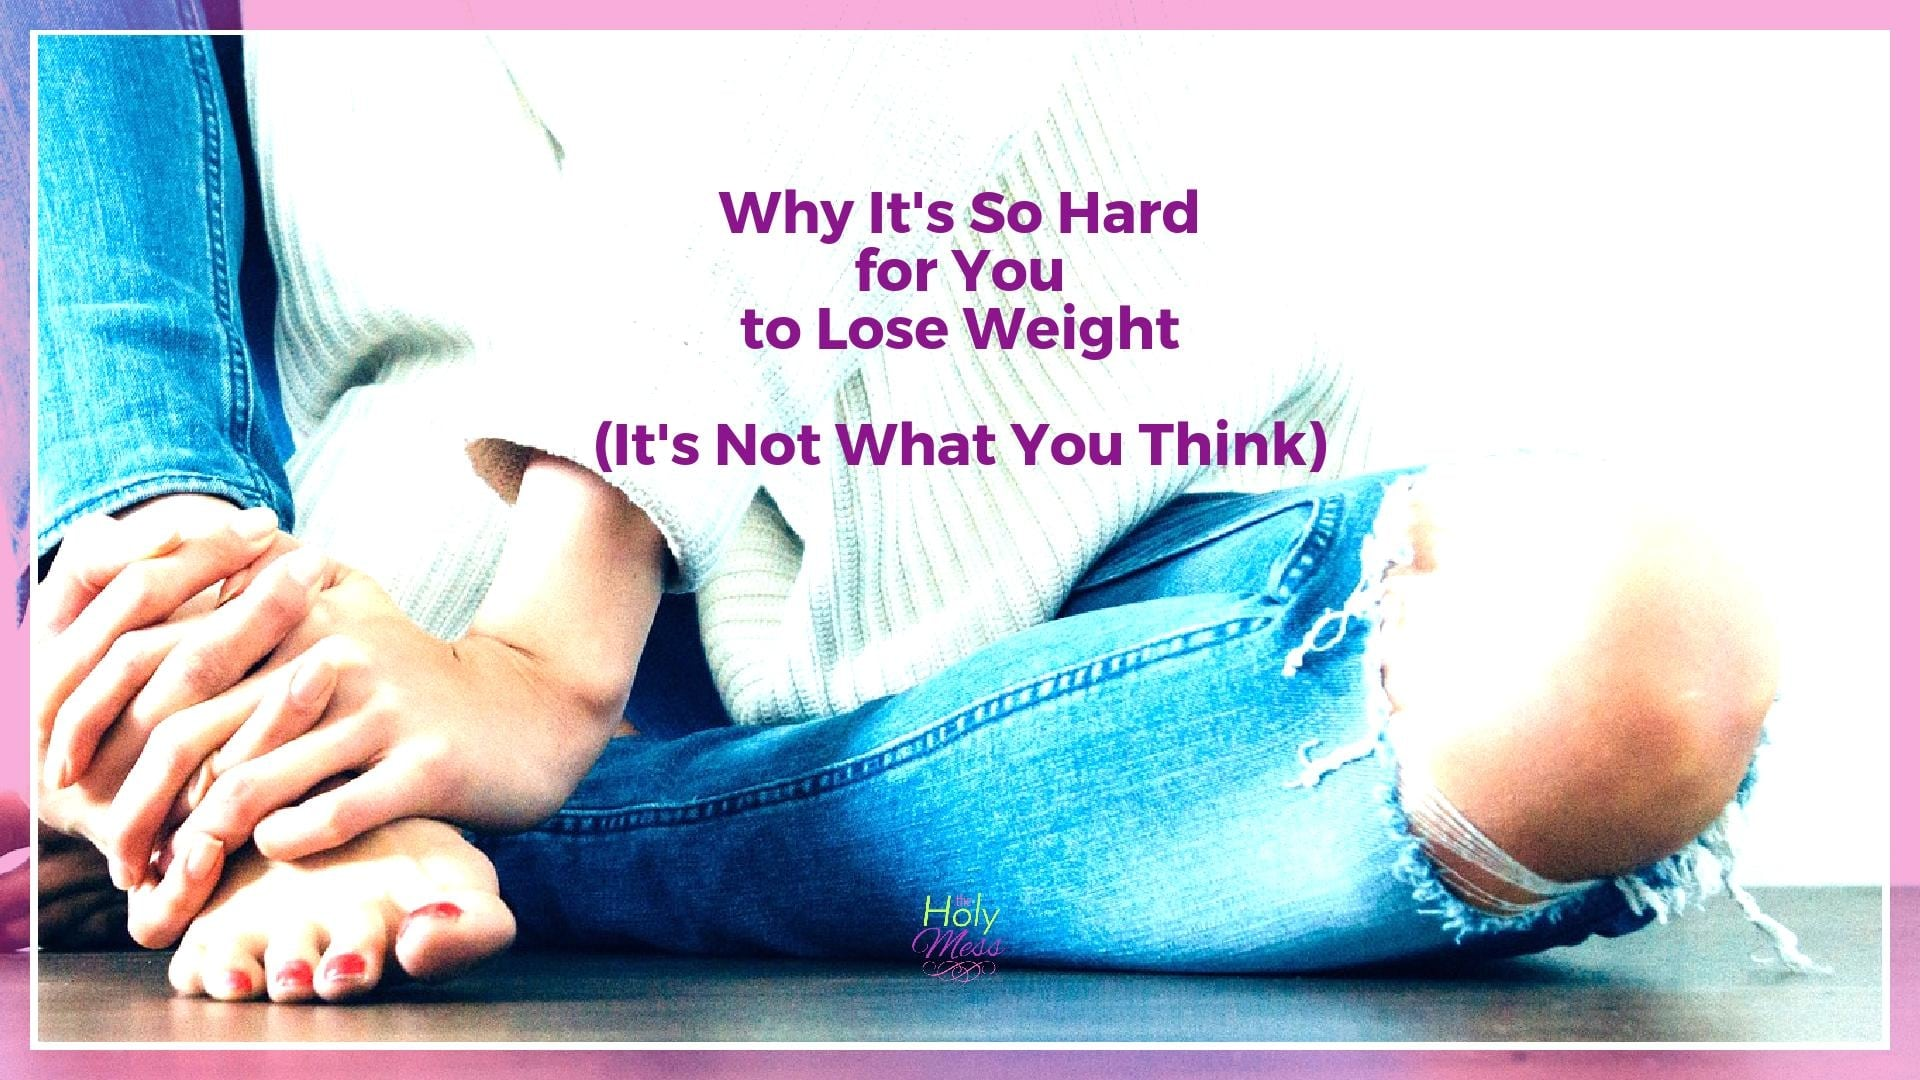 Why It's So Hard For You to Lose Weight (and It's Not What You Think)